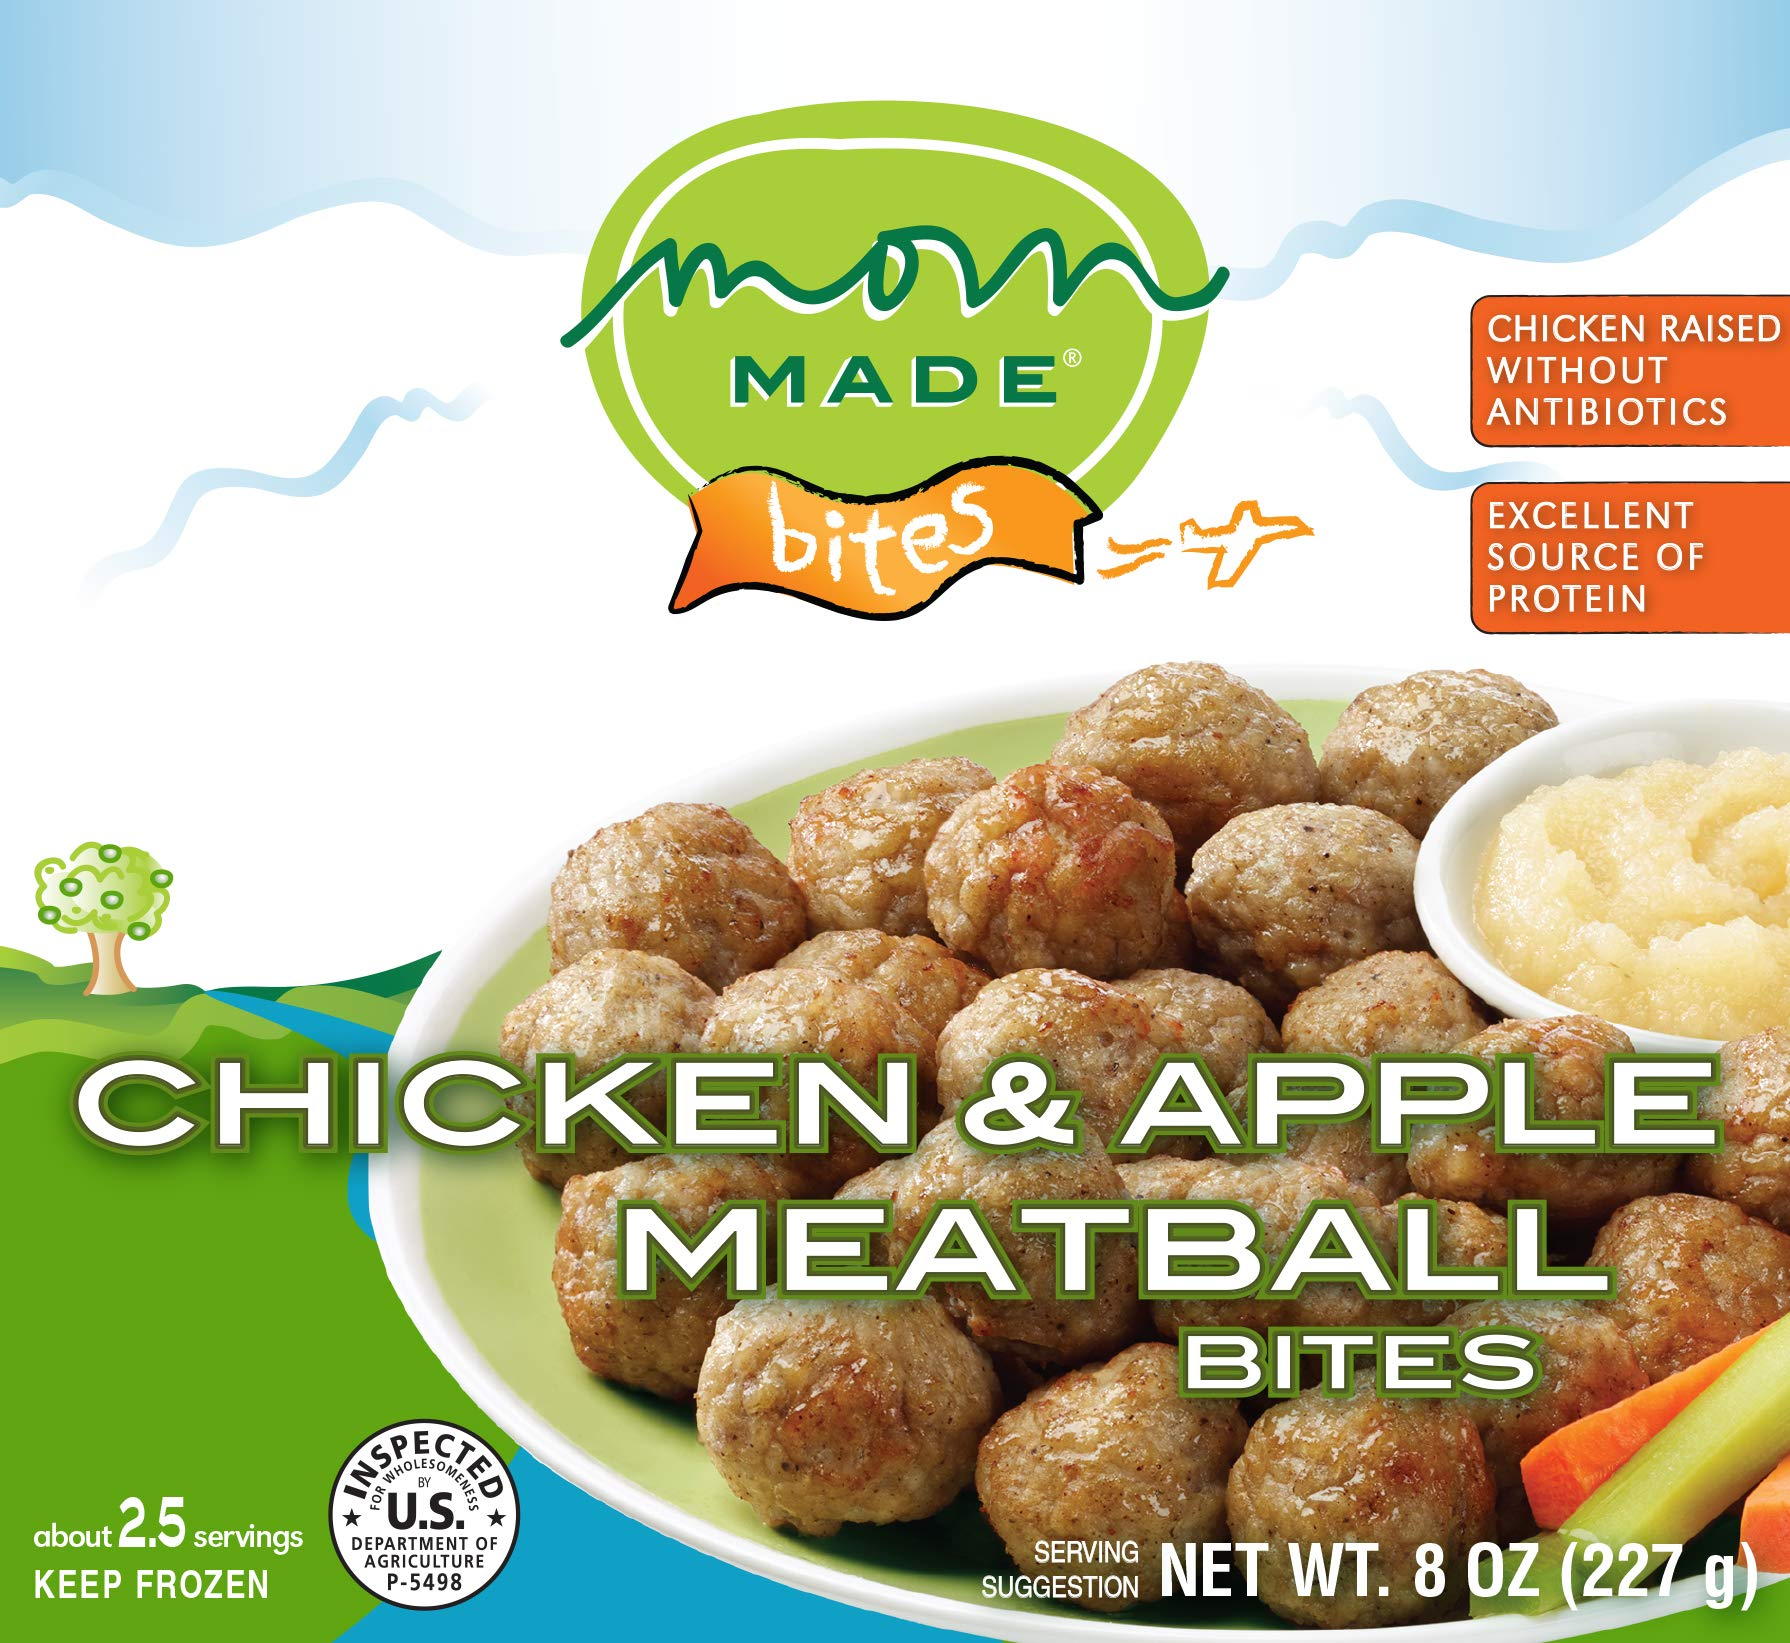 Mom Made Meatballs - Chicken & Apple Meatballs, Antibiotic-free, Healthy frozen meals made in the USA, 8oz (8 pack) by Mom Made